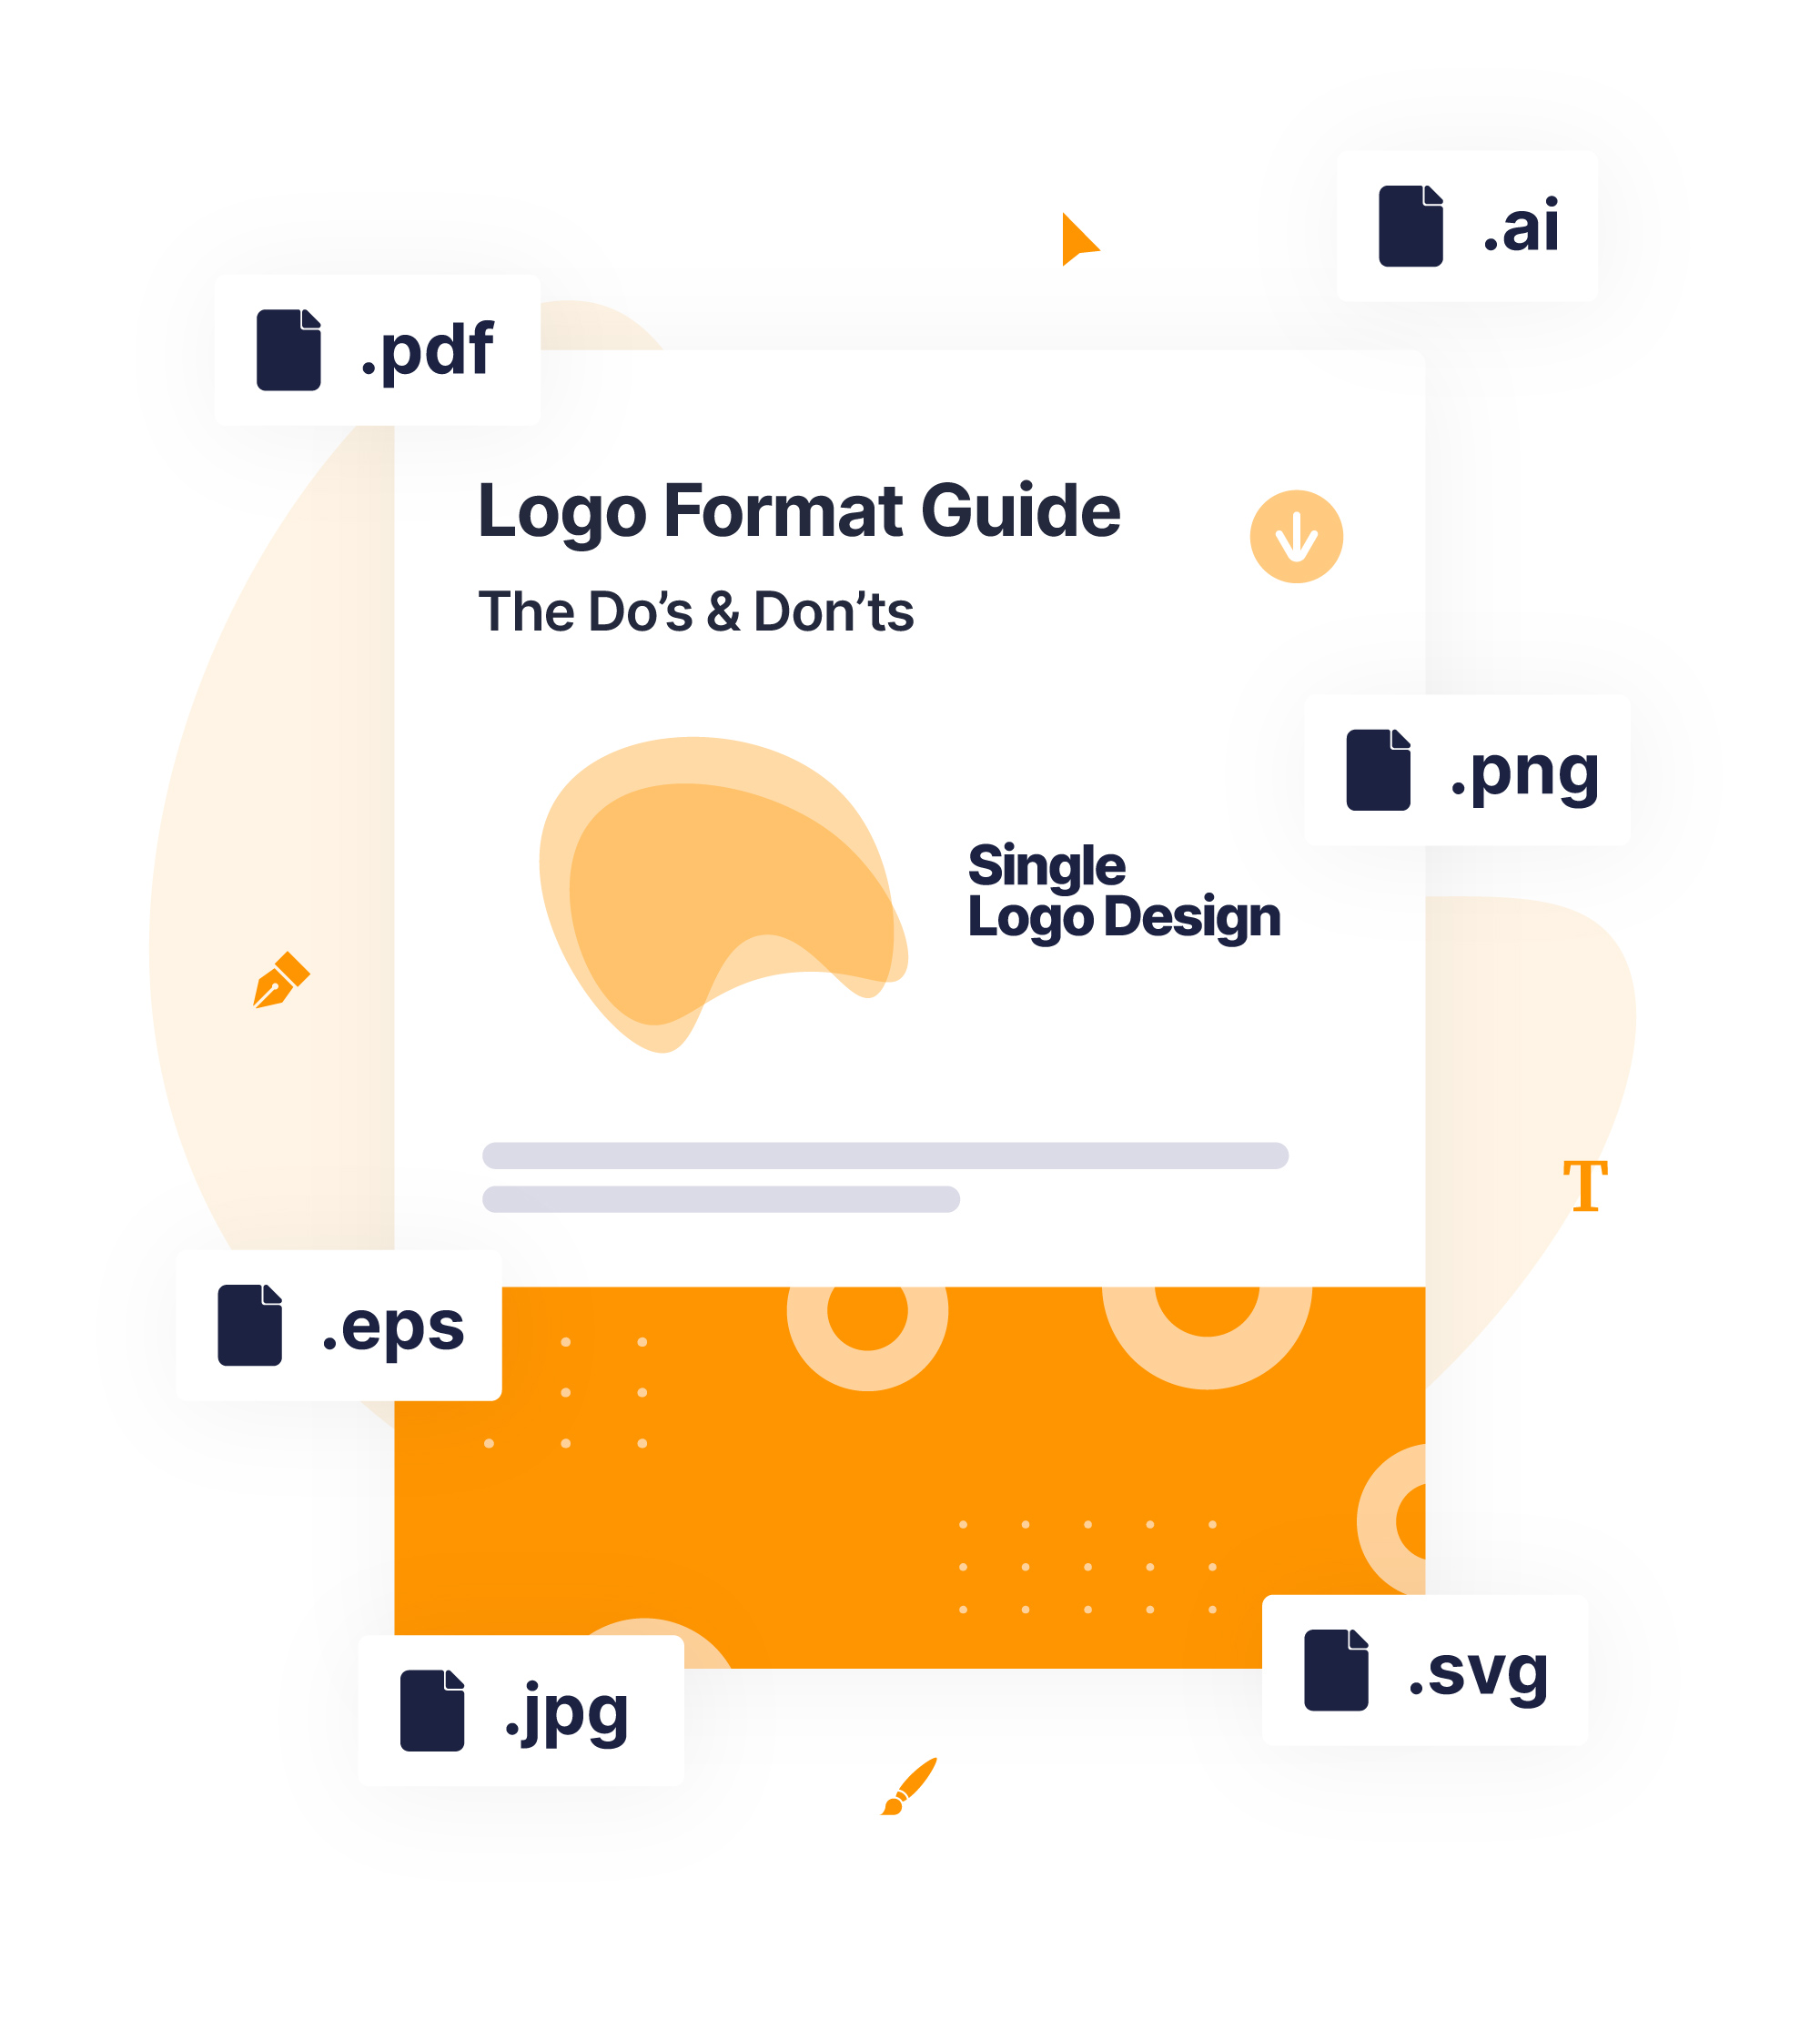 logo guide and file types graphic